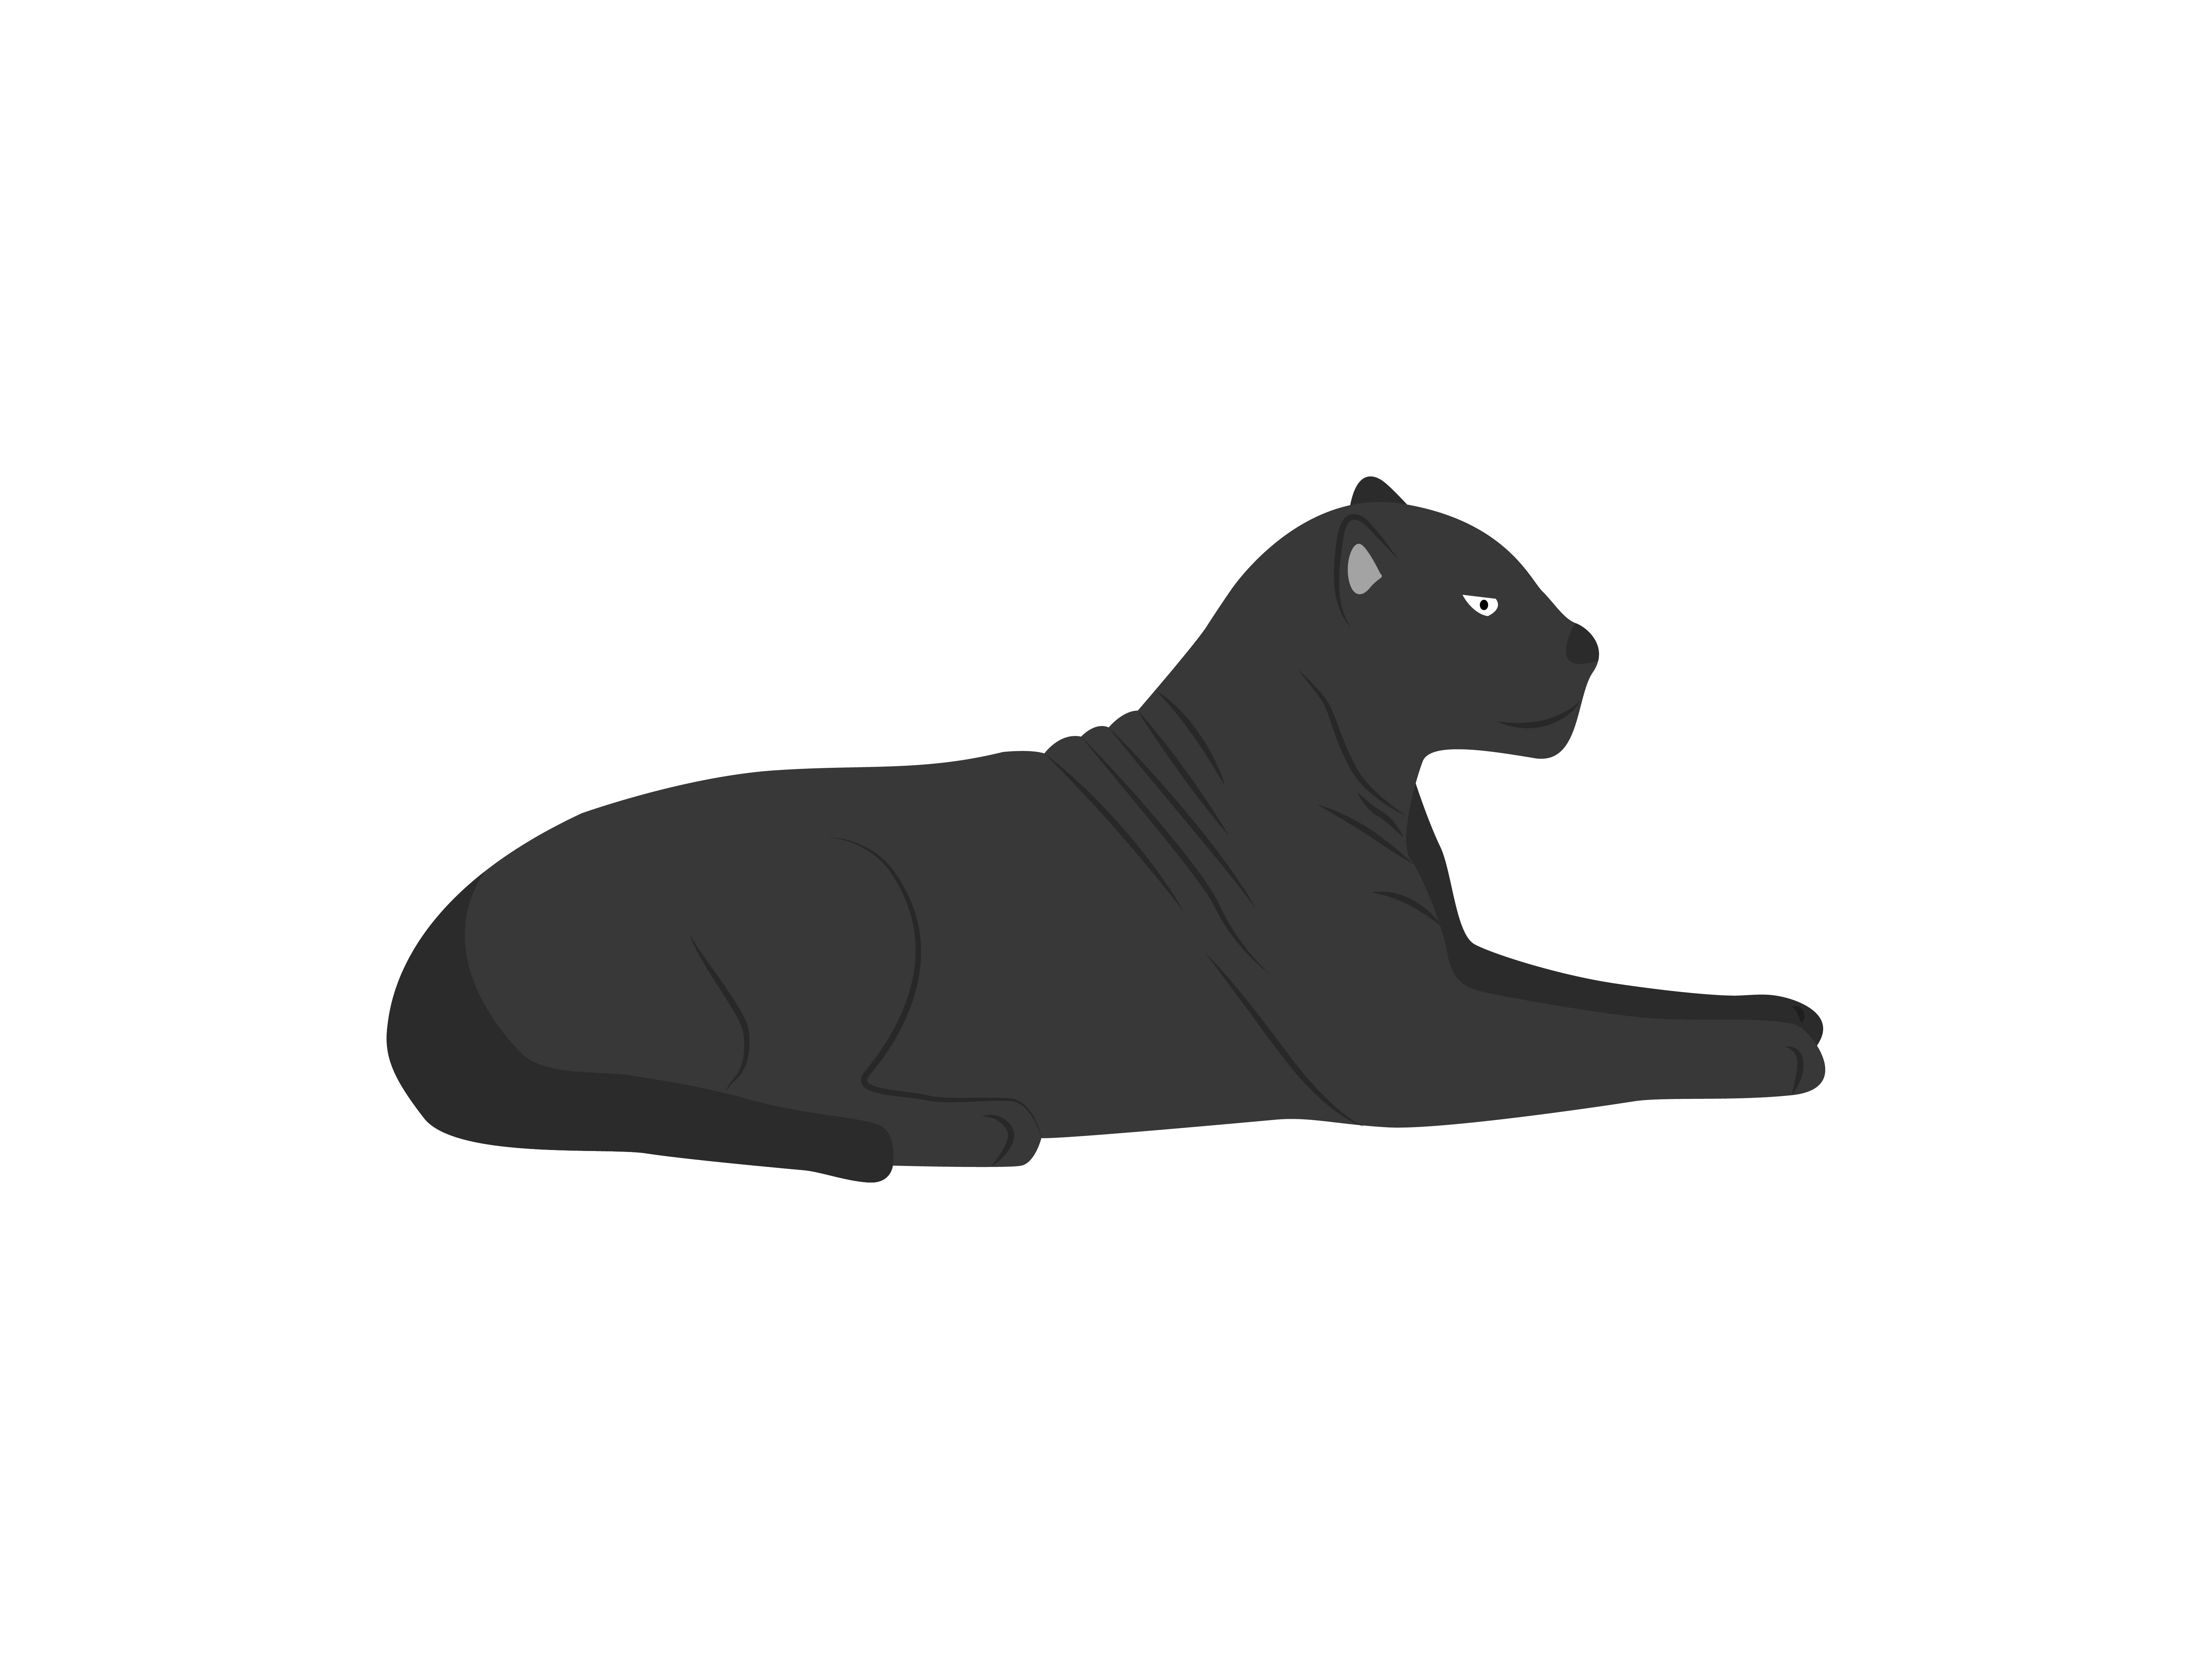 Download Free Black Panther Animal Graphic By Archshape Creative Fabrica for Cricut Explore, Silhouette and other cutting machines.